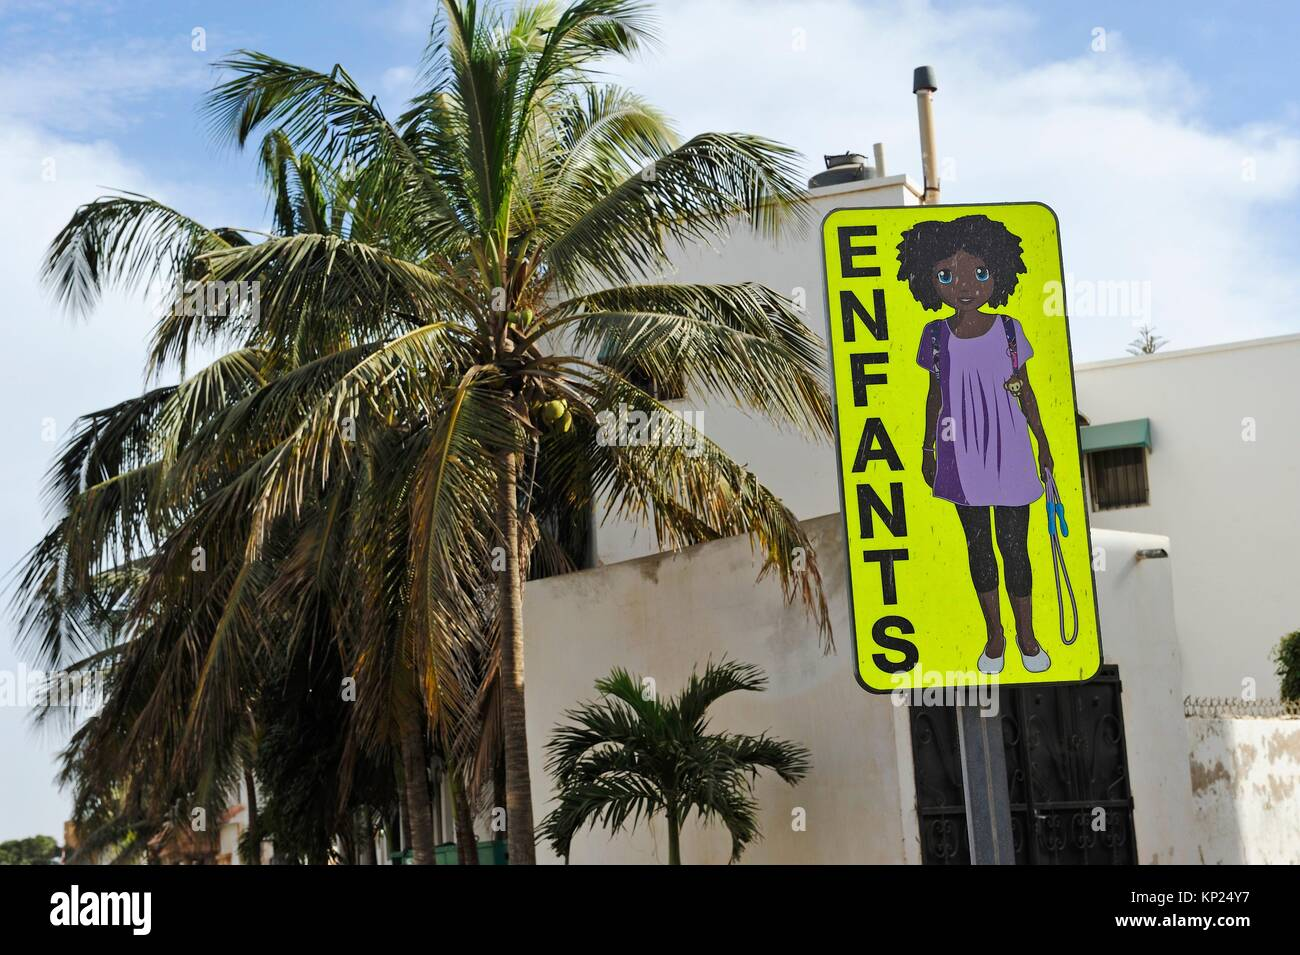 warning road sign, Dakar, Senegal, West Africa. - Stock Image